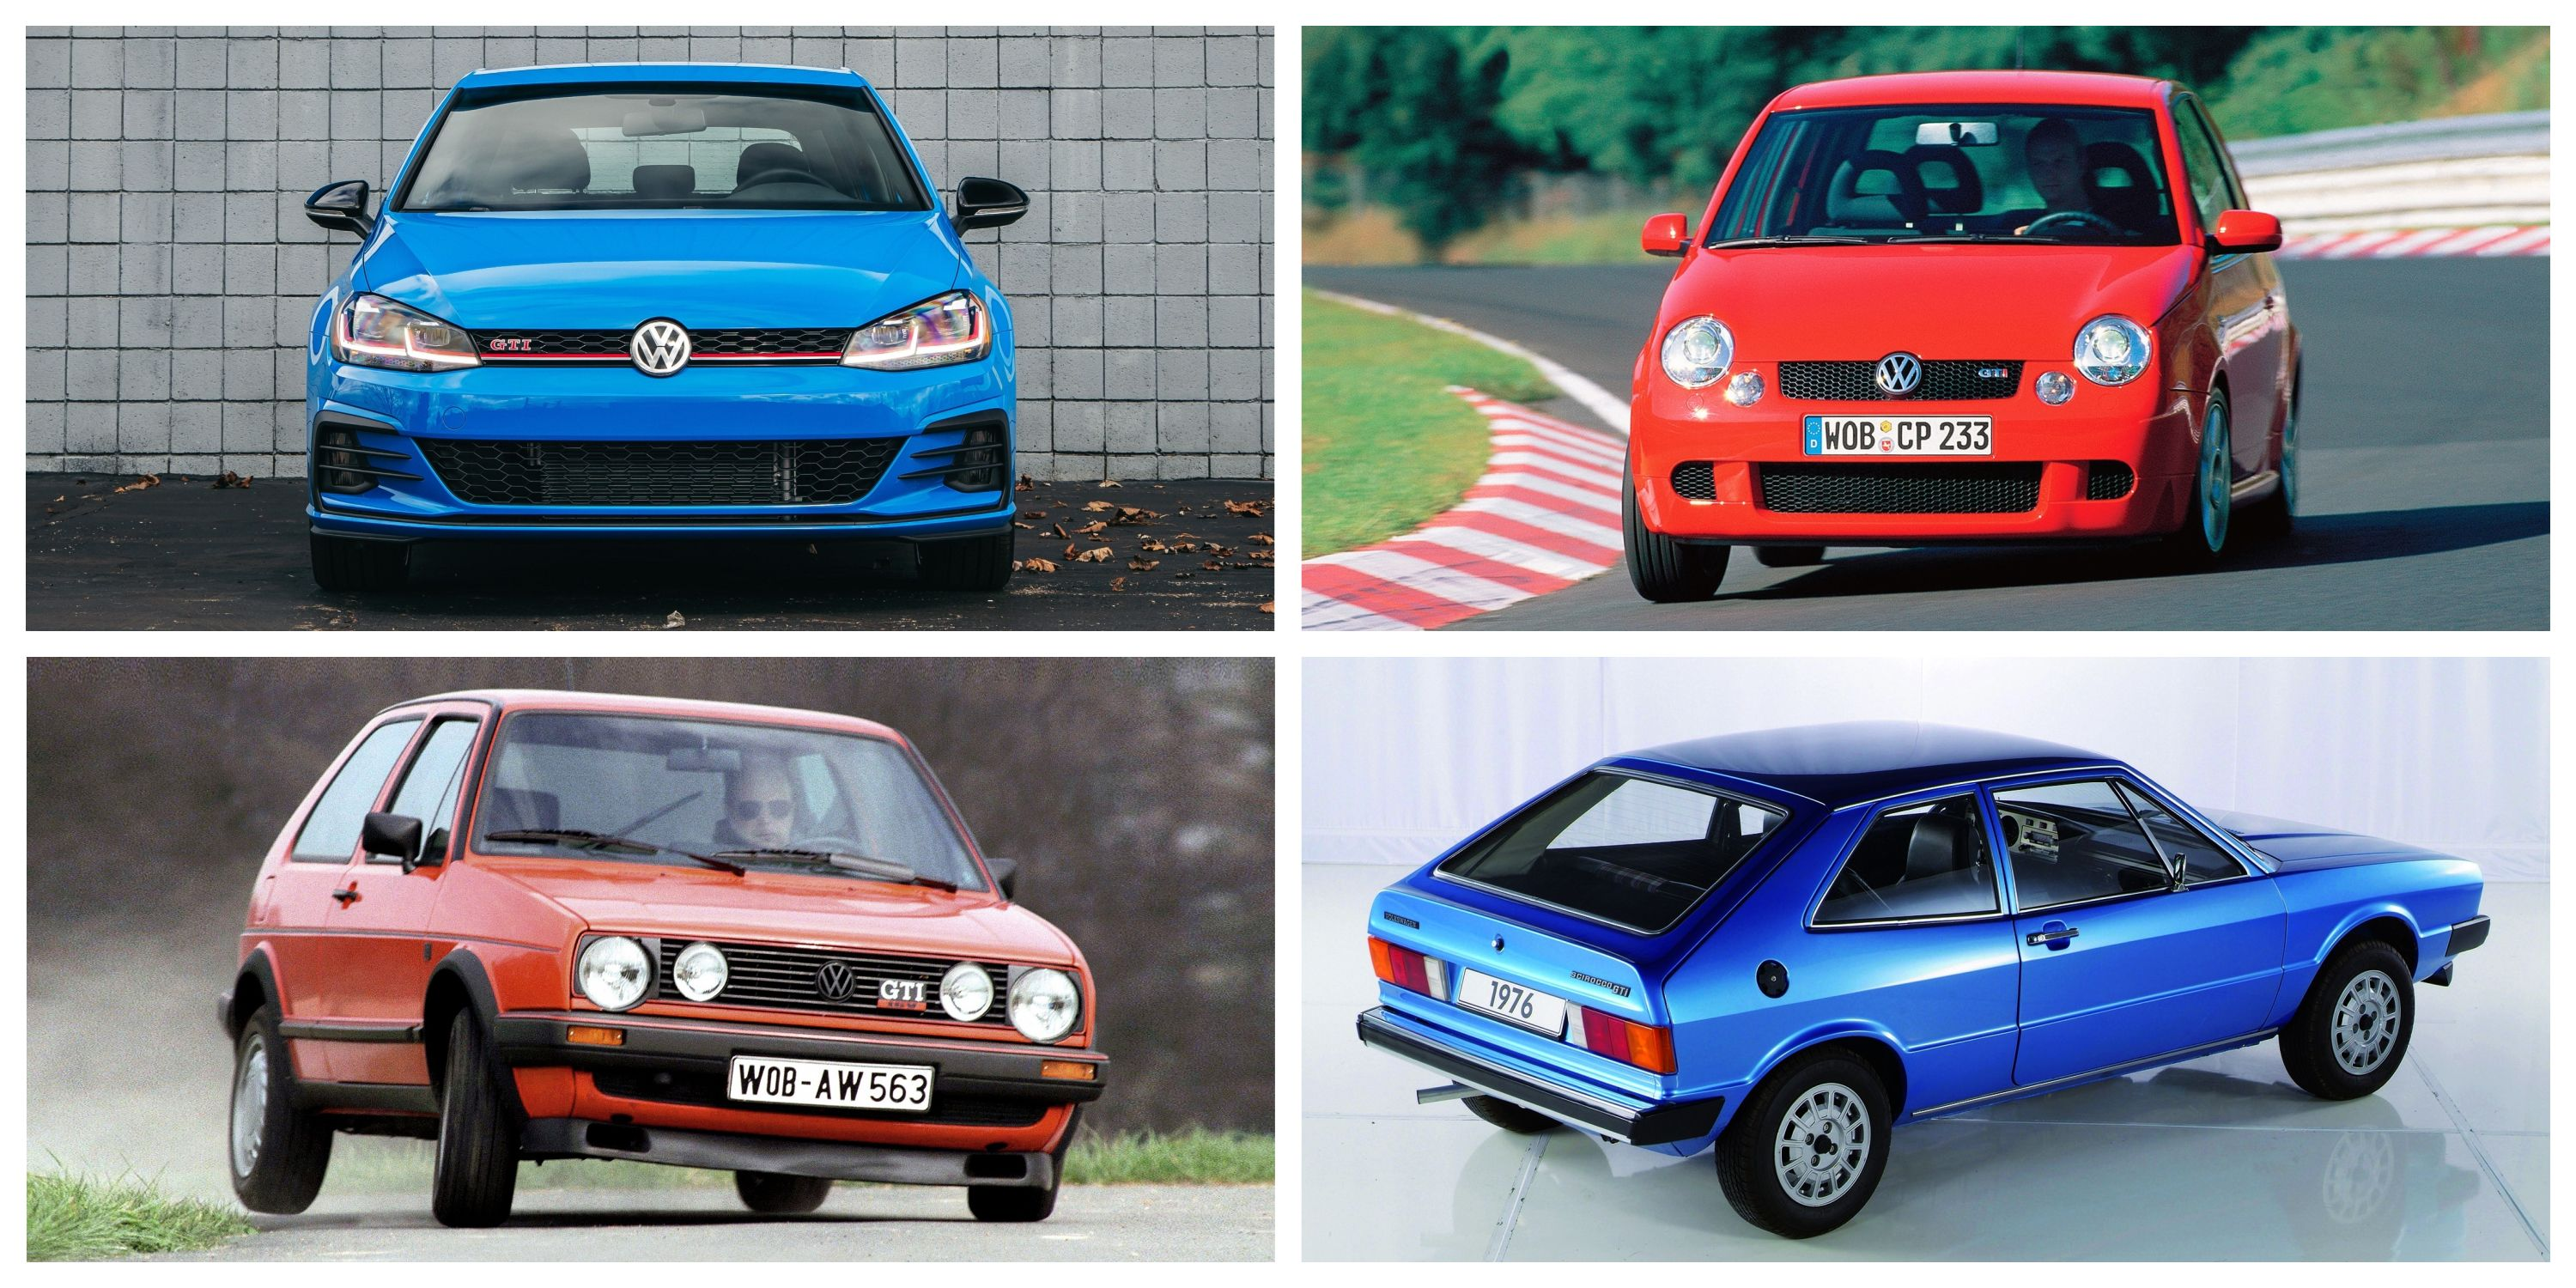 Volkswagen Gti The History Of An Icon